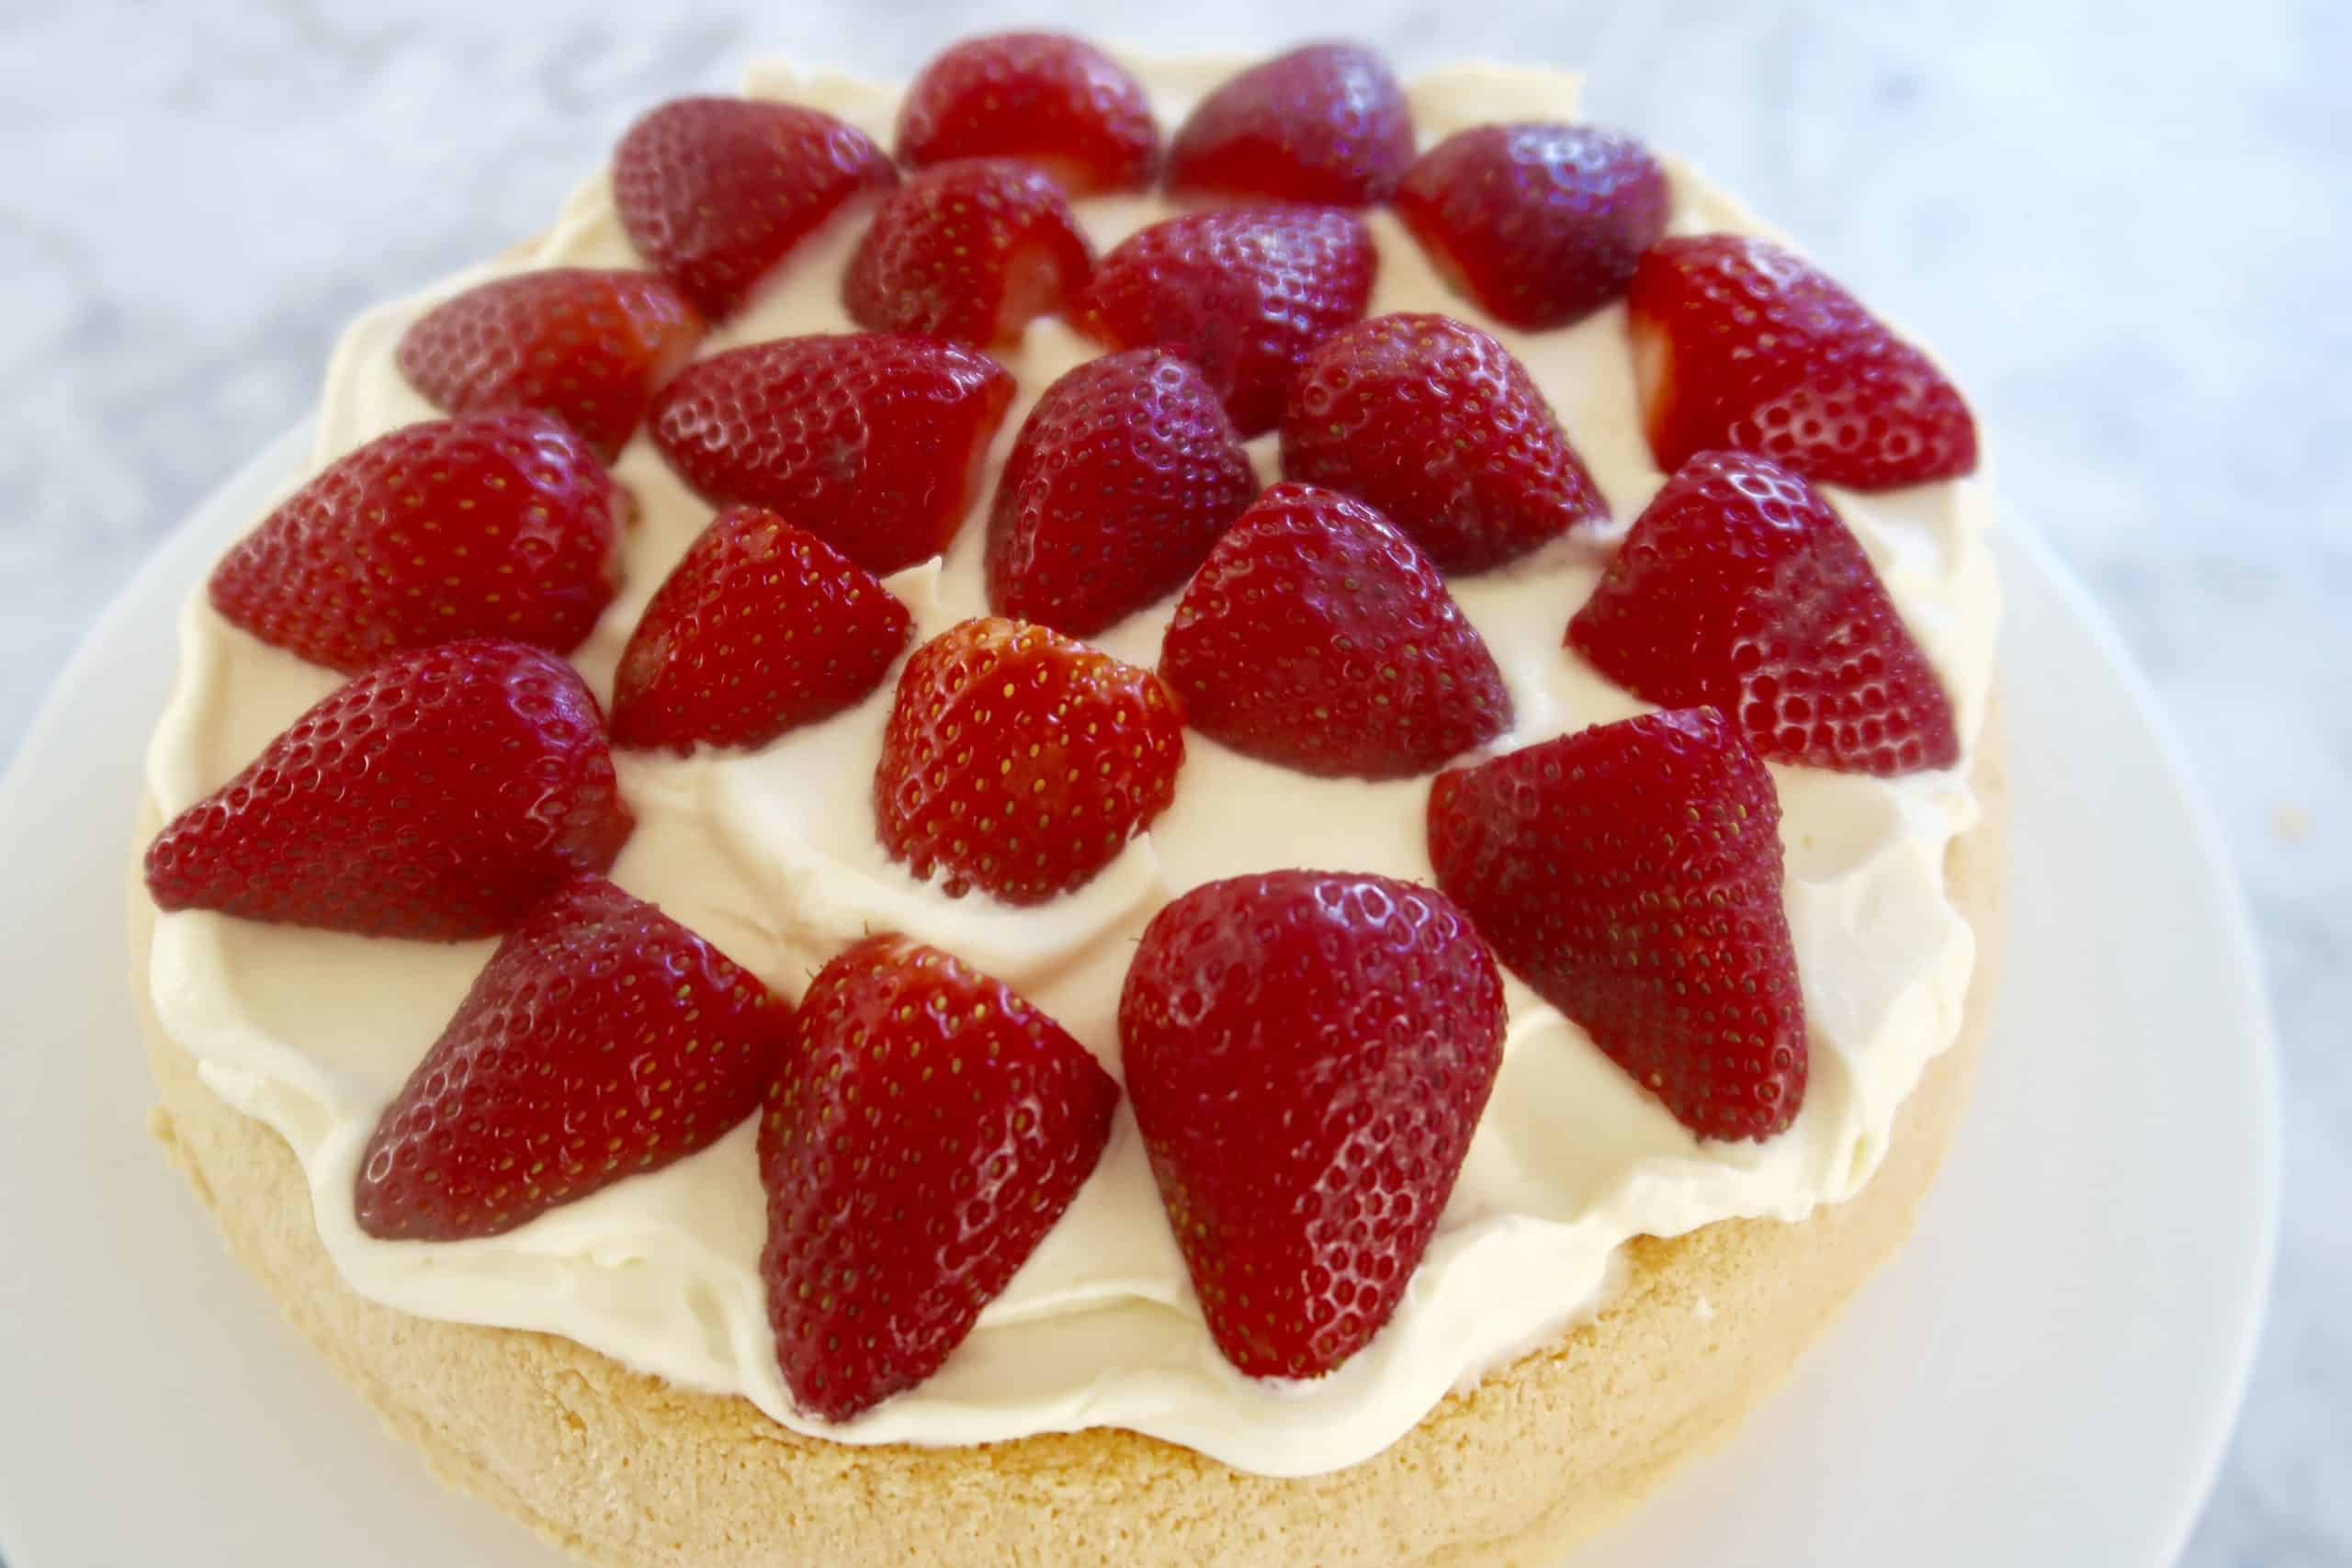 strawberry sponge cake spread with cream and topped with halved strawberries